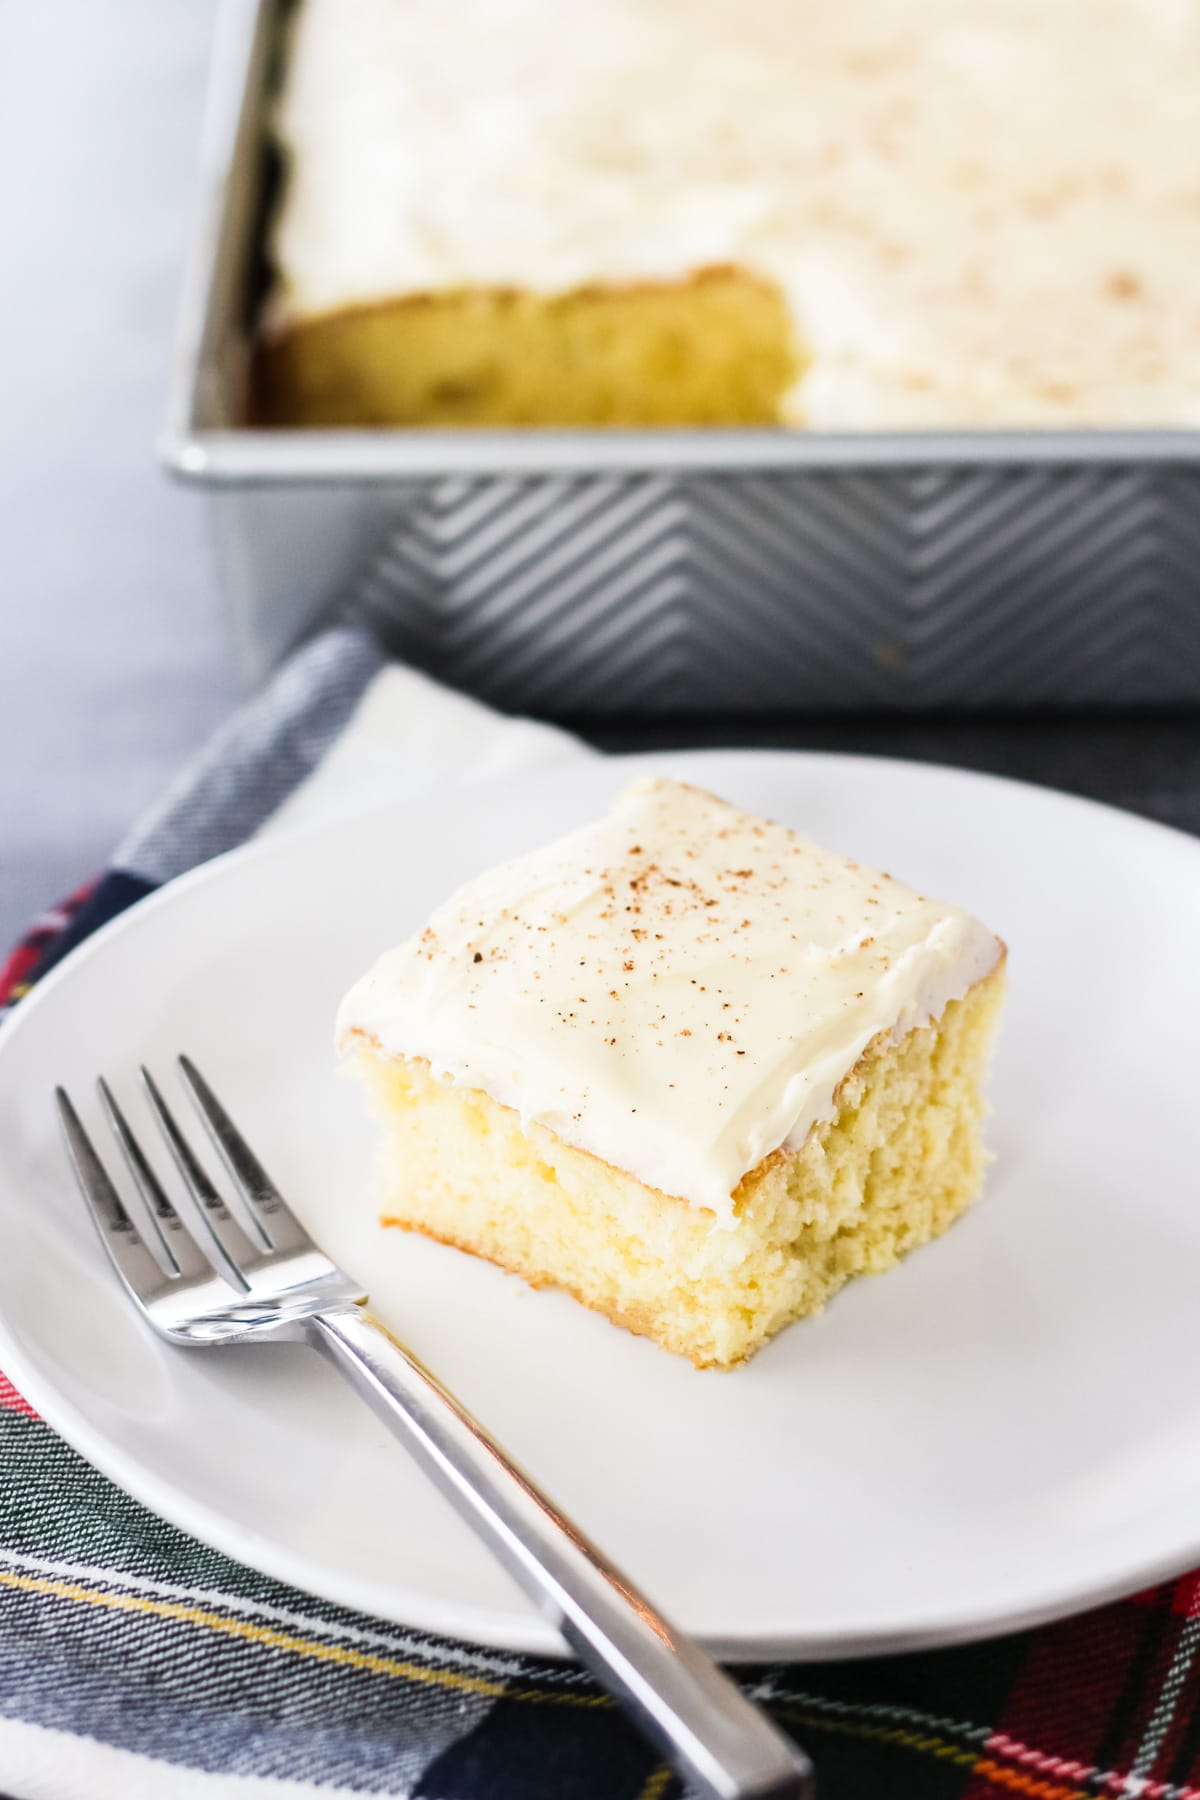 a square of frosted eggnog cake on a plate with a fork. in the background is the pan of eggnog cake with a piece cut out of it